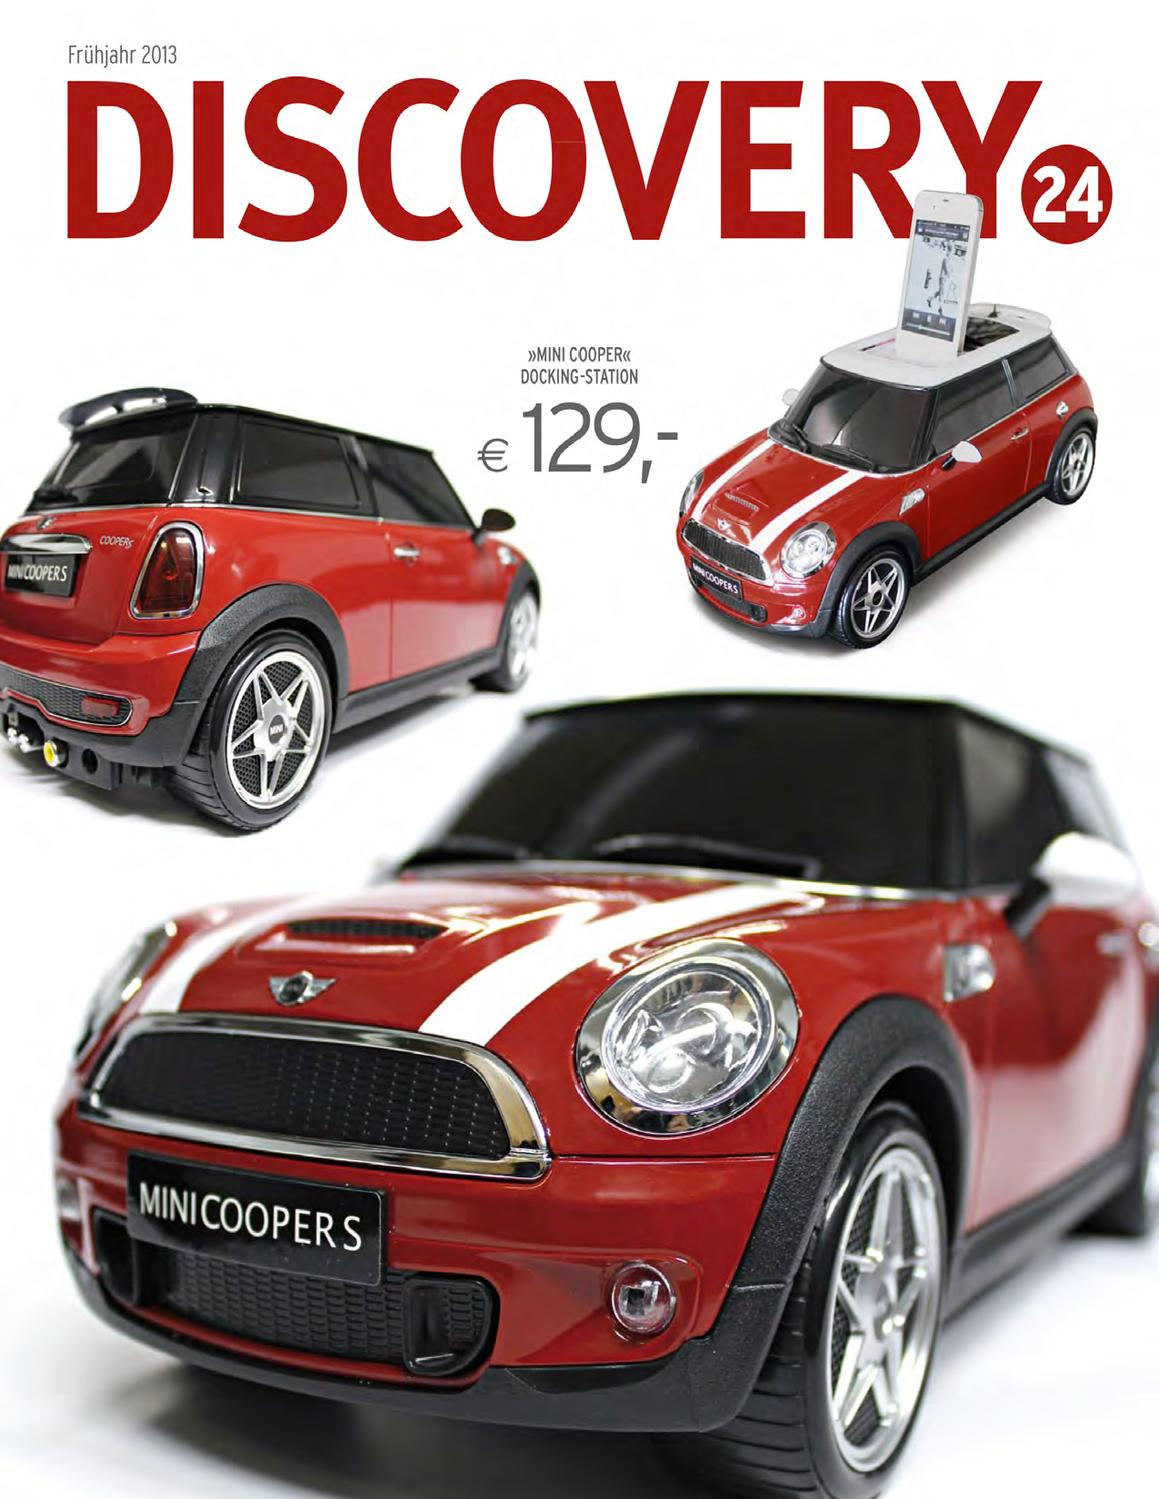 Discovery 24 2013 for Discovery katalog